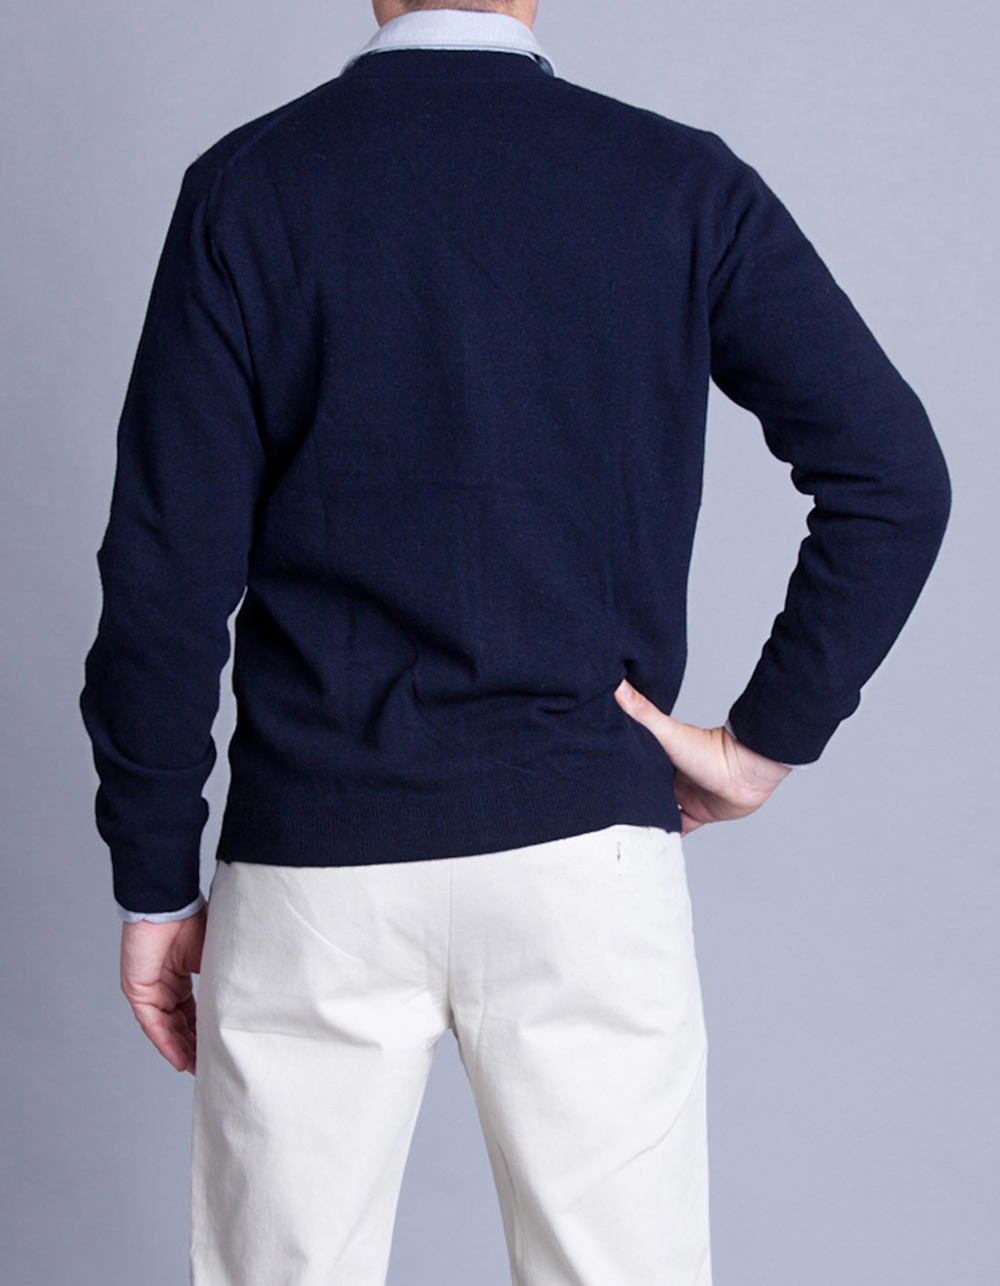 Navy cardigan - Backside